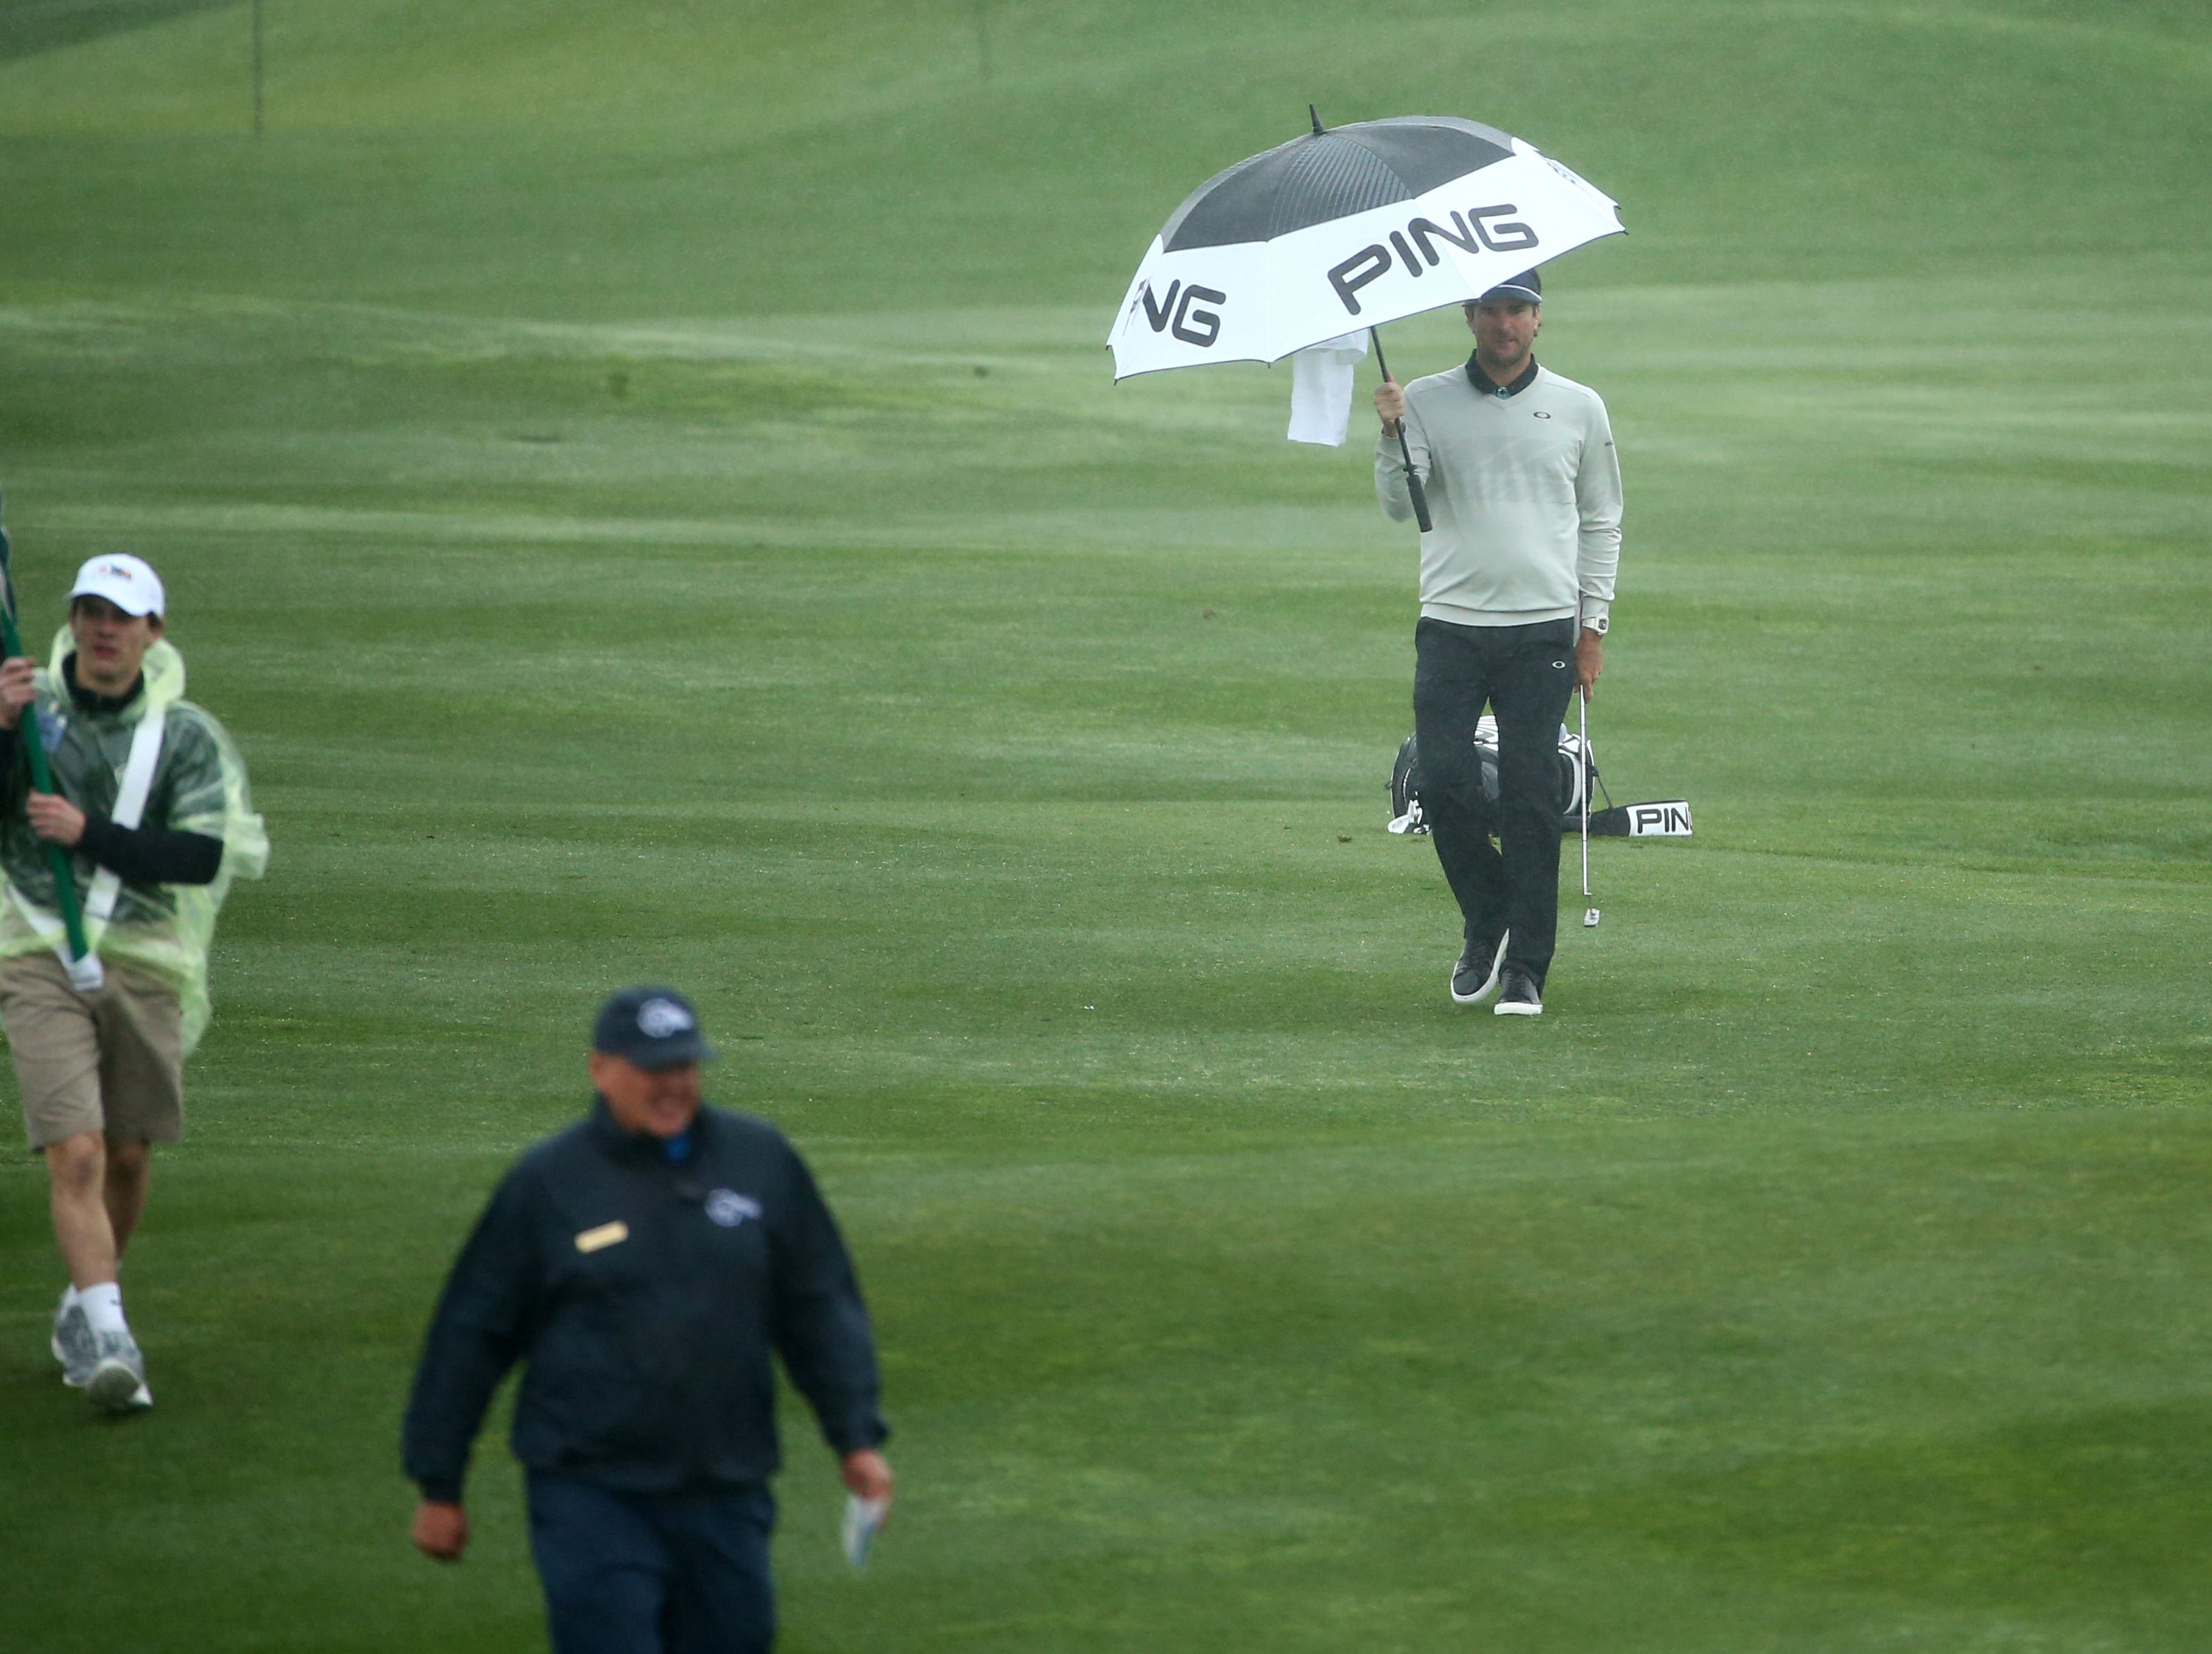 Bubba Watson walks to the 6th green during final round action on Feb. 3 during the Waste Management Phoenix Open at the TPC Scottsdale Stadium Course.